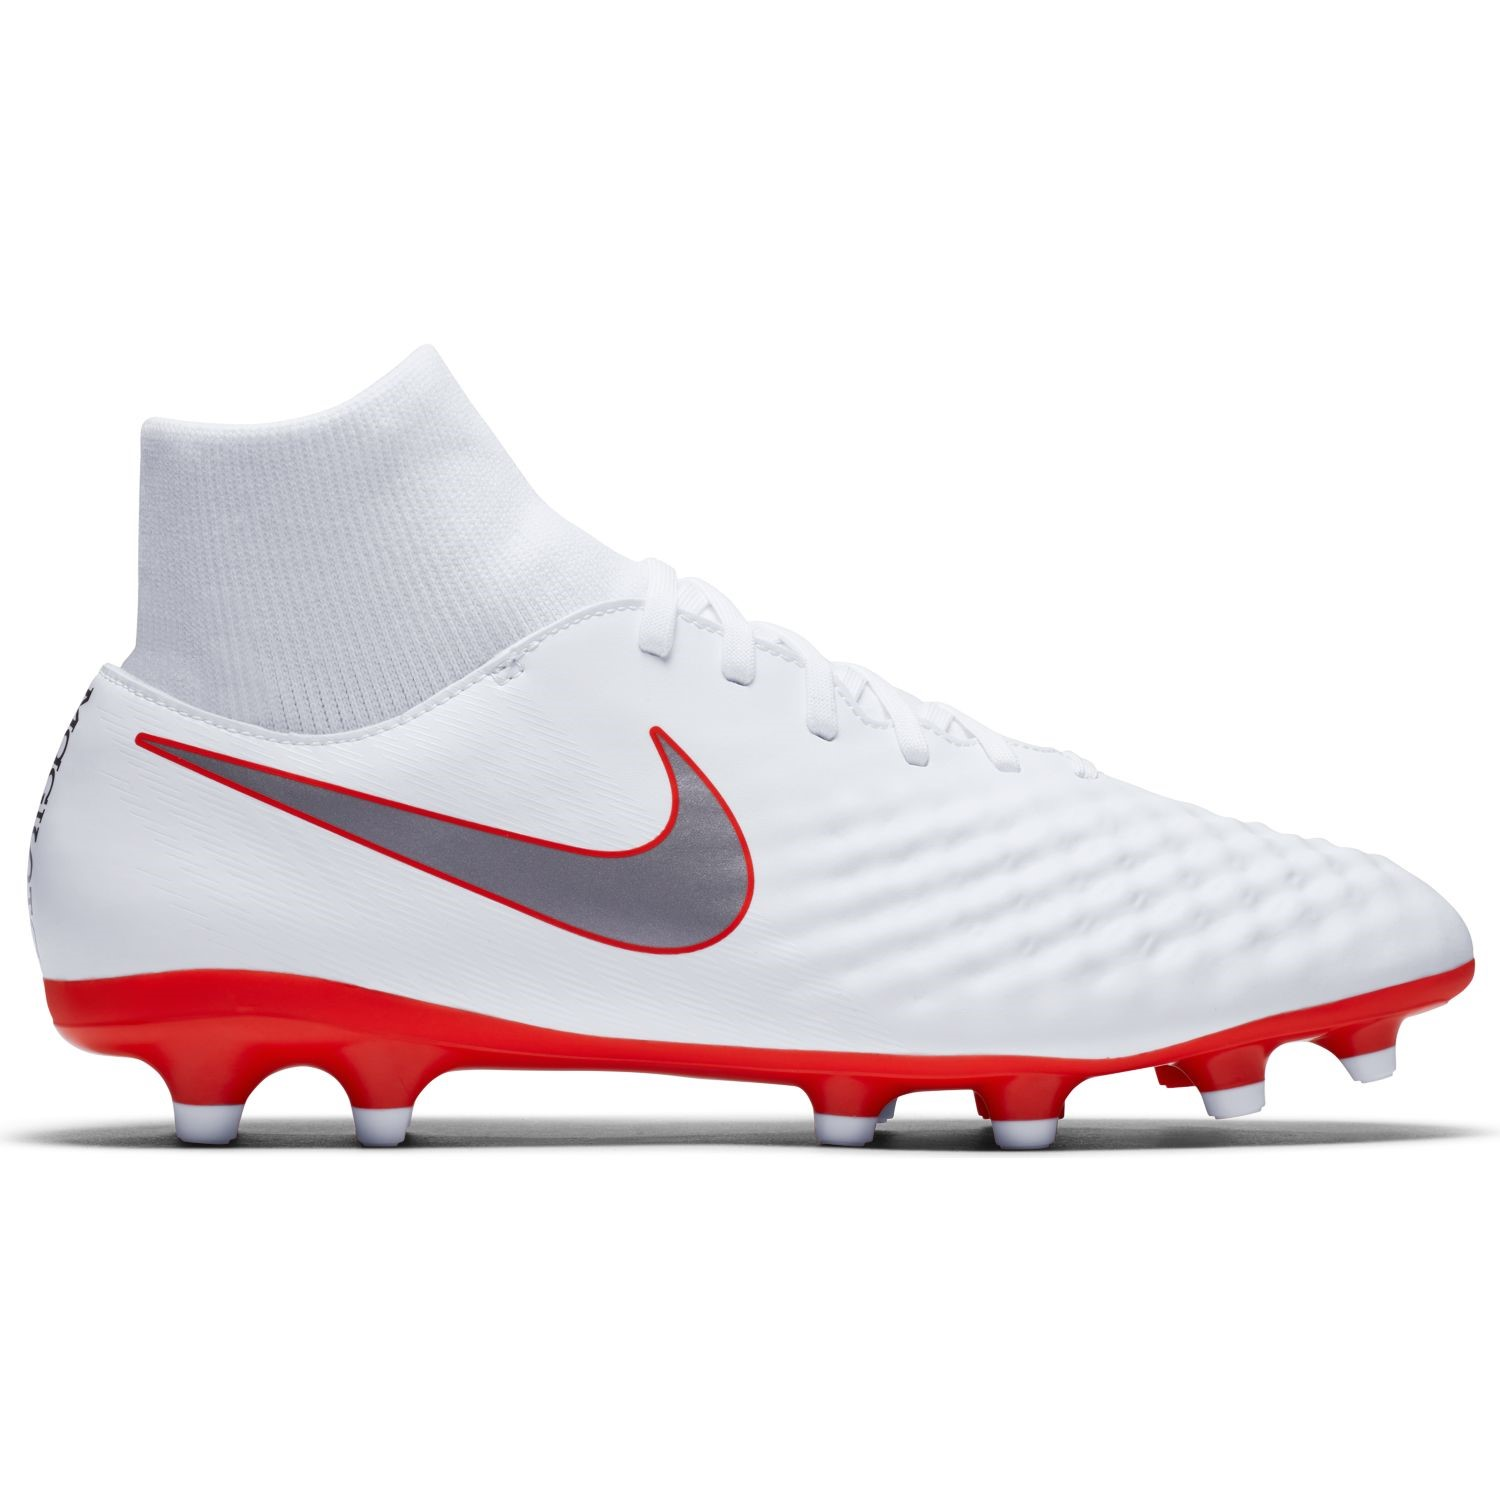 Nike Magista Obra II Academy DF FG - Mens Football Boots - White Metallic  8fb291f82